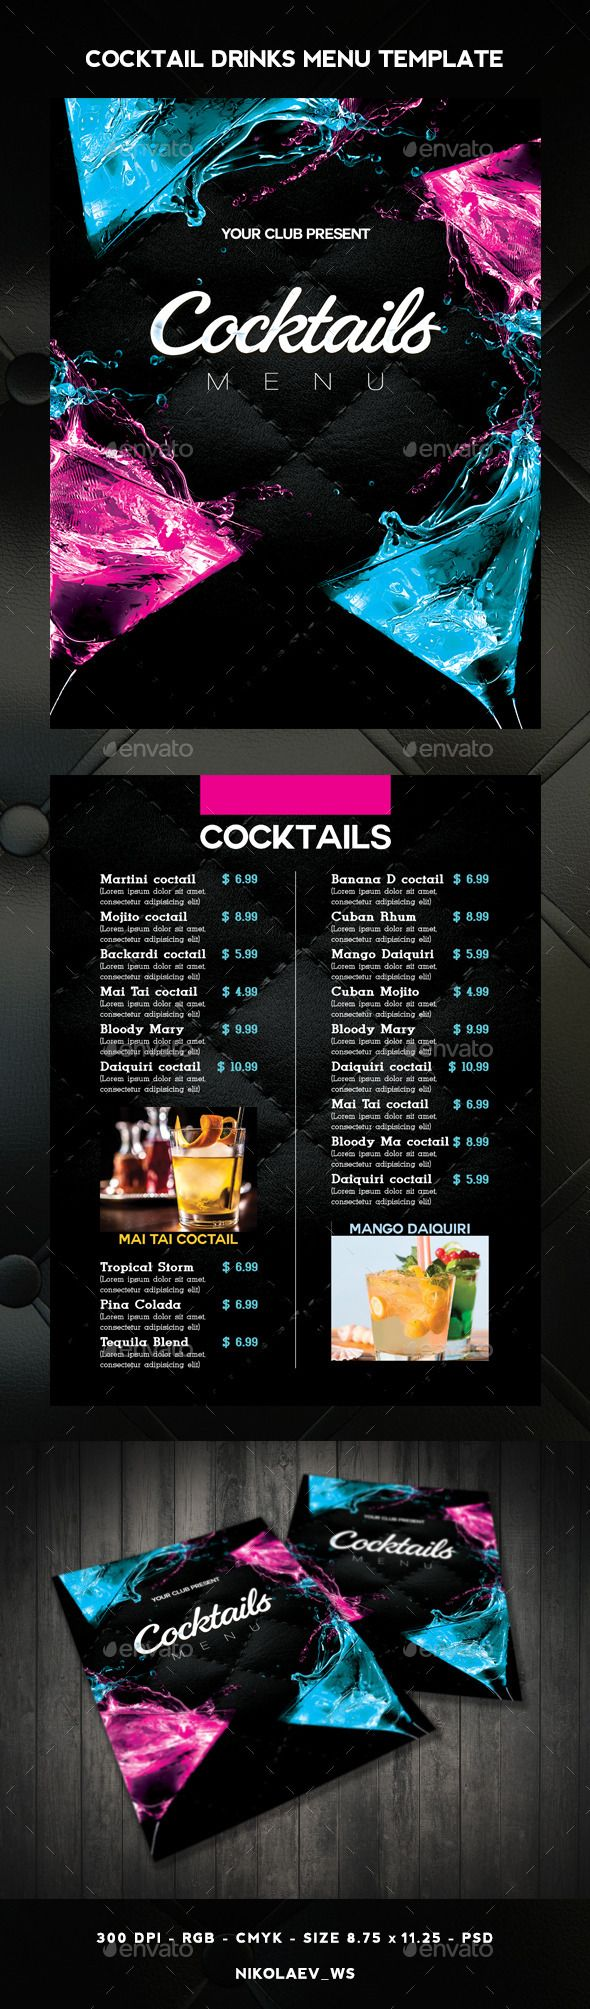 93 best images about Ideas Menu Design – Drinks Menu Template